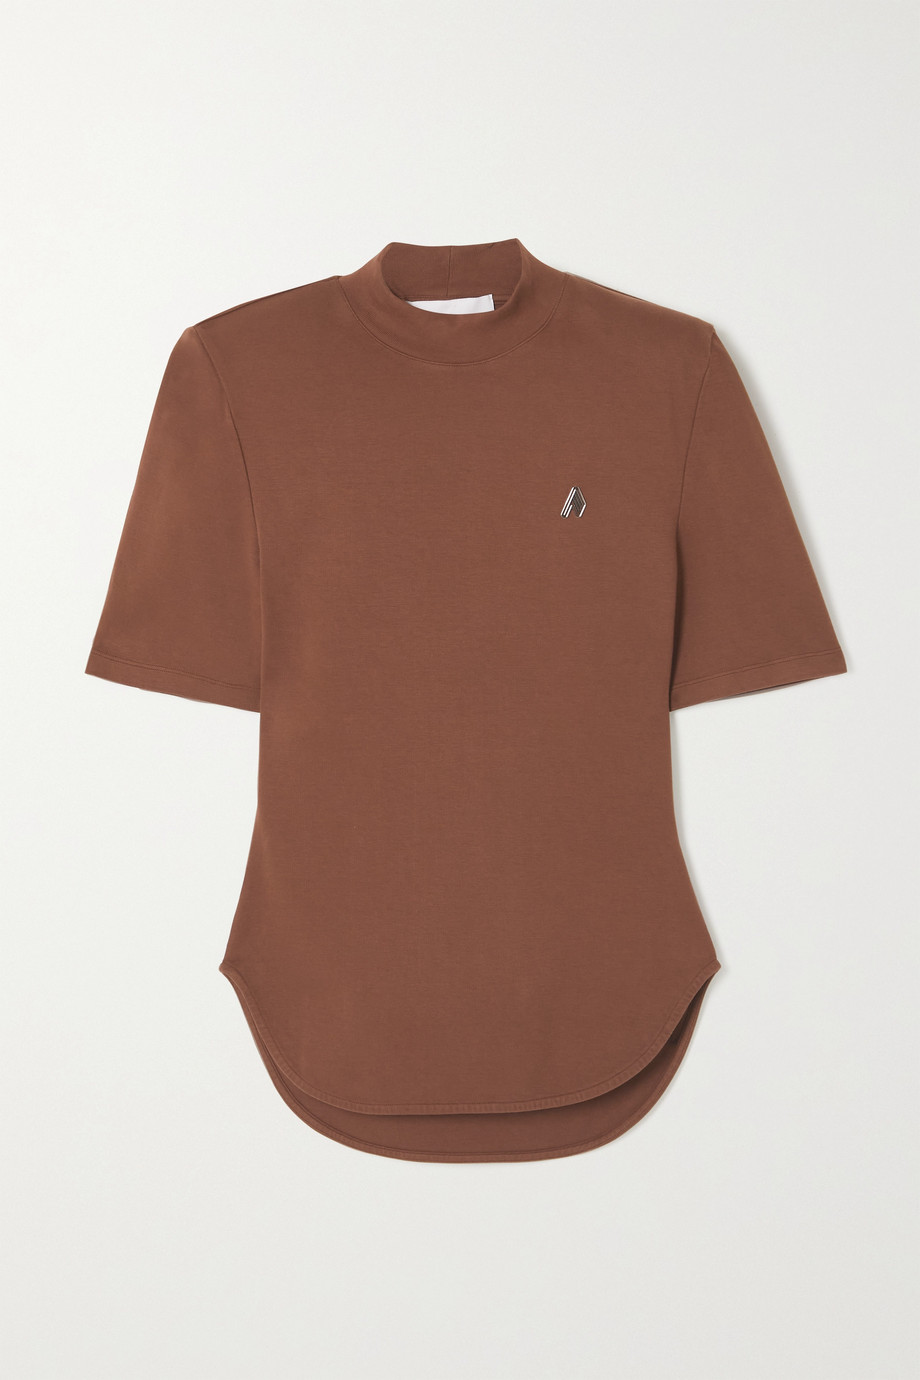 The Attico Tessa cotton-jersey T-shirt